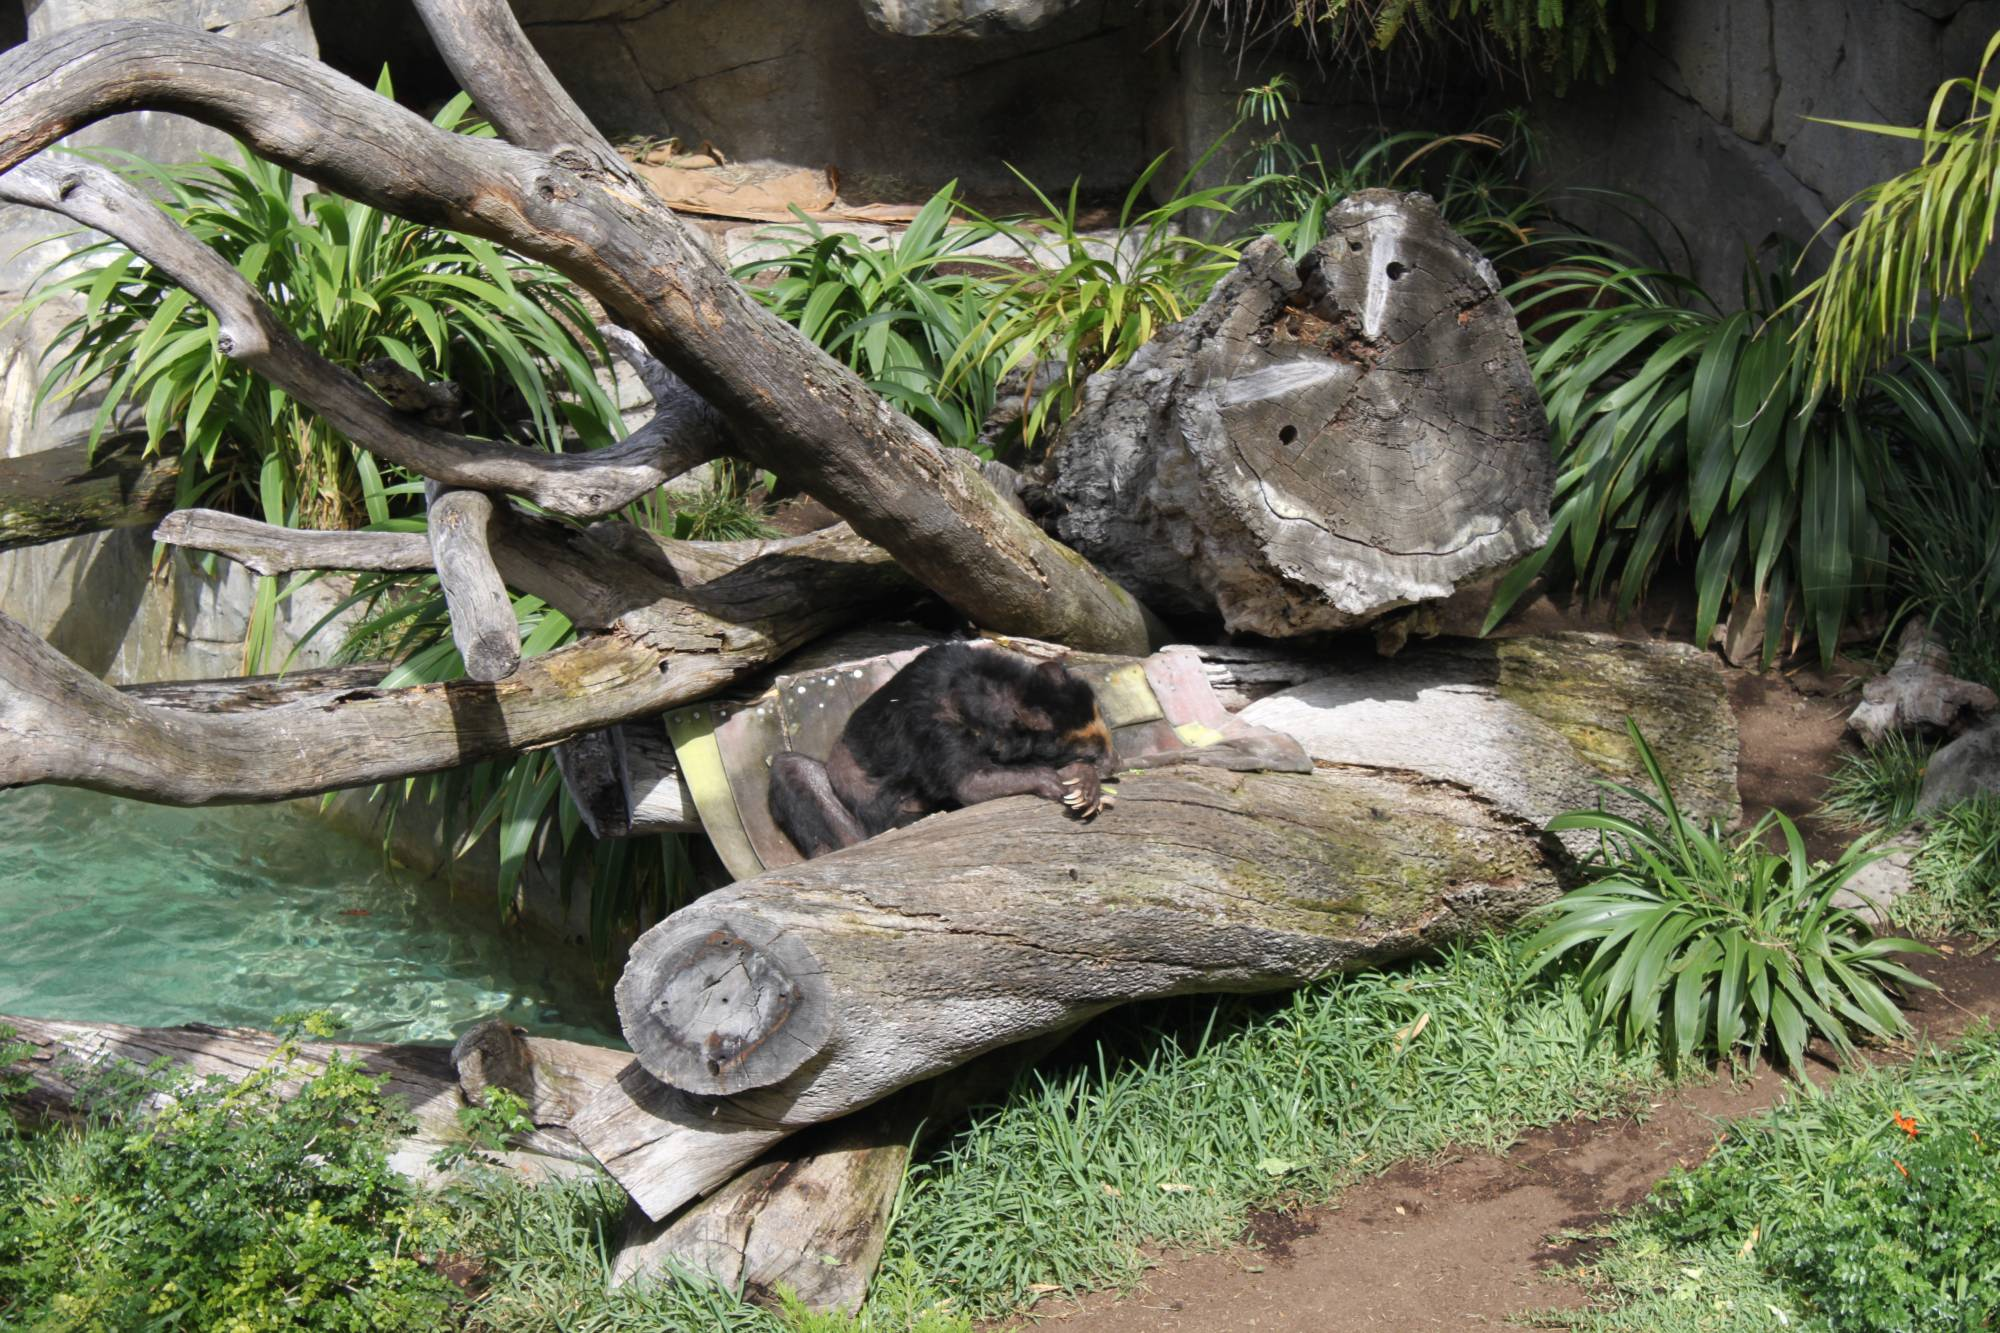 Sleeping bear at San Diego Zoo